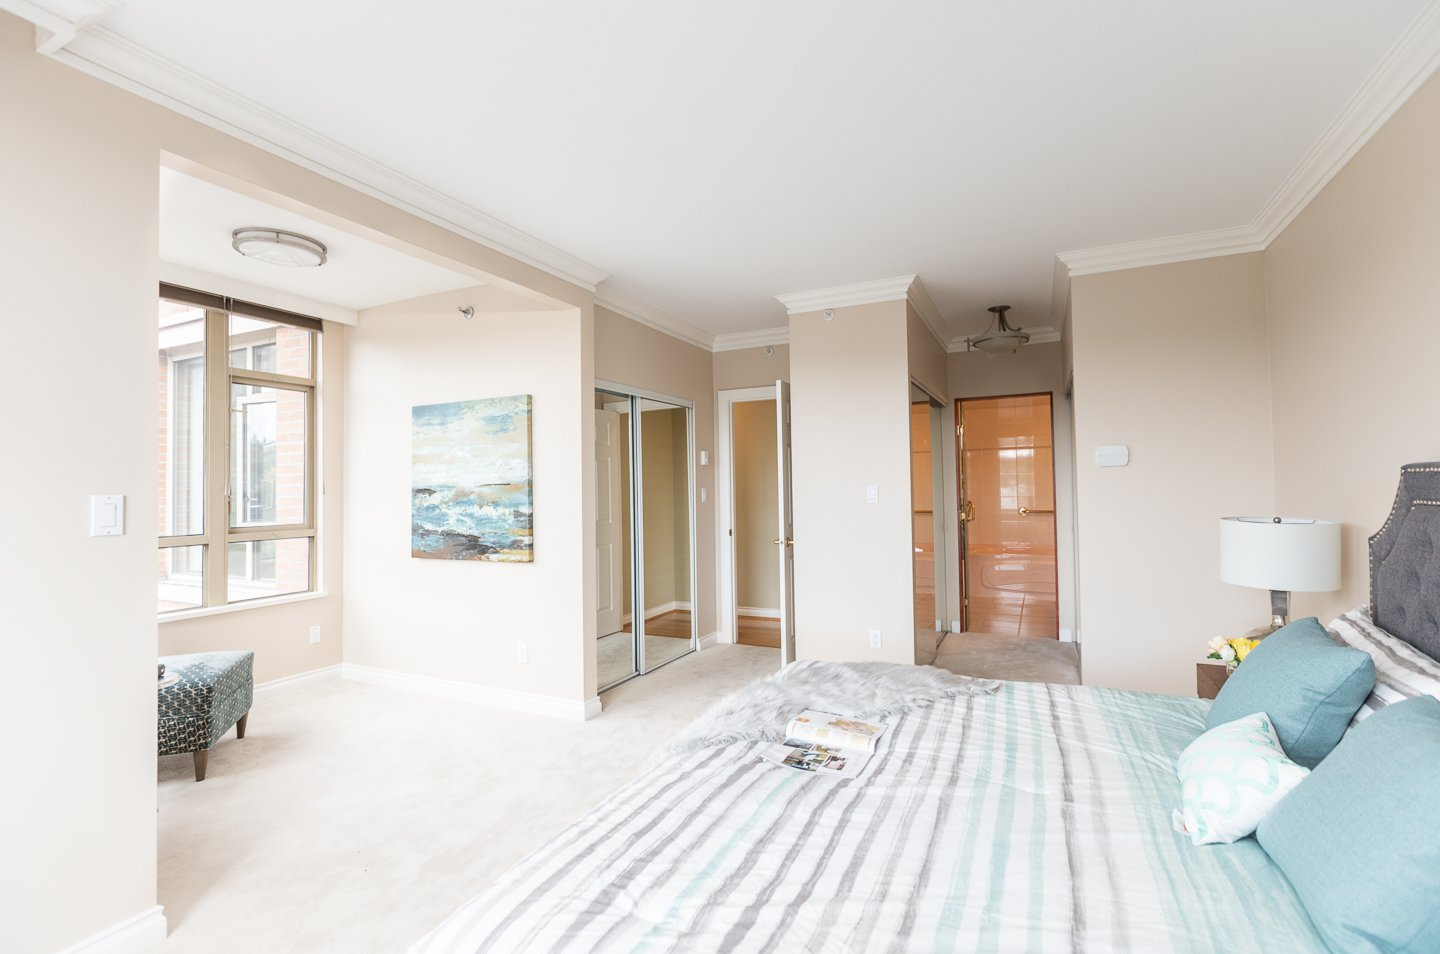 Photo 13: Photos: 401-2580 TOLMIE ST in VANCOUVER: Point Grey Condo for sale (Vancouver West)  : MLS®# R2397003